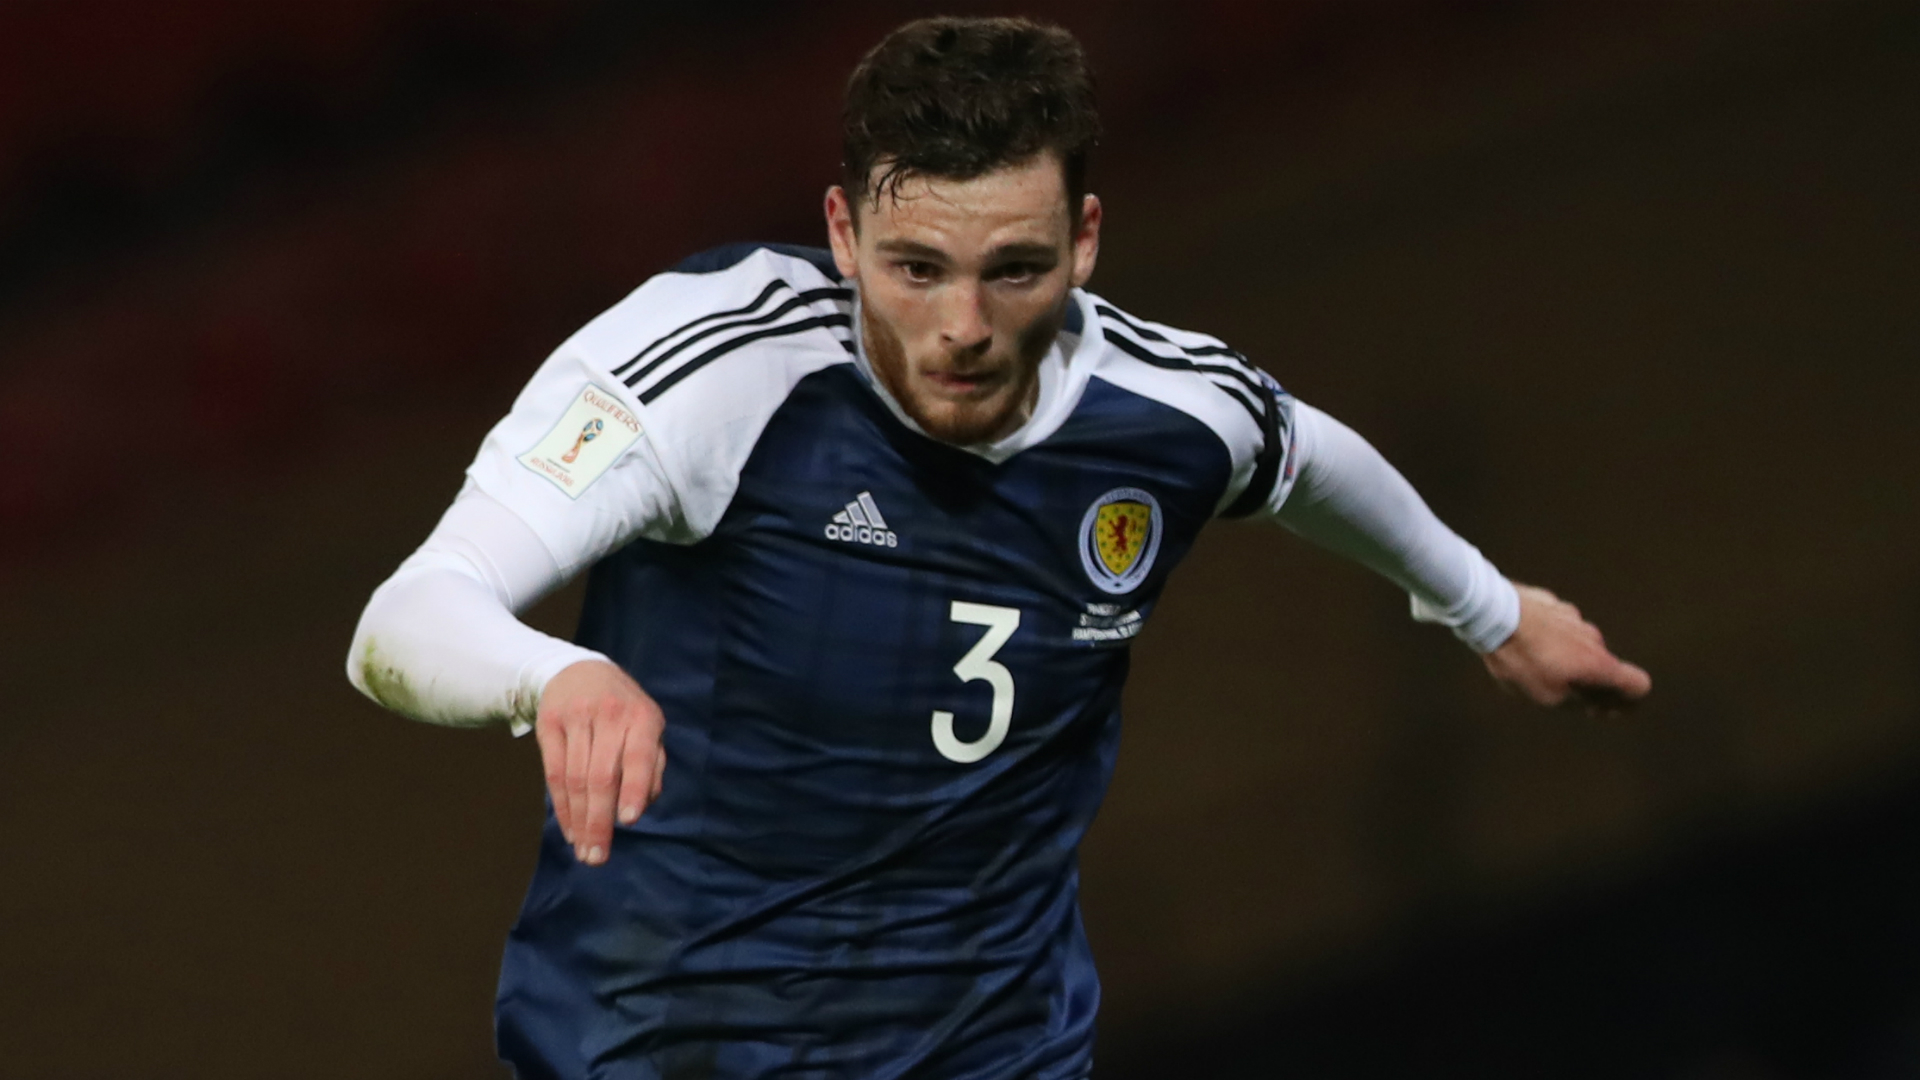 Lithuania 0-3 Scotland